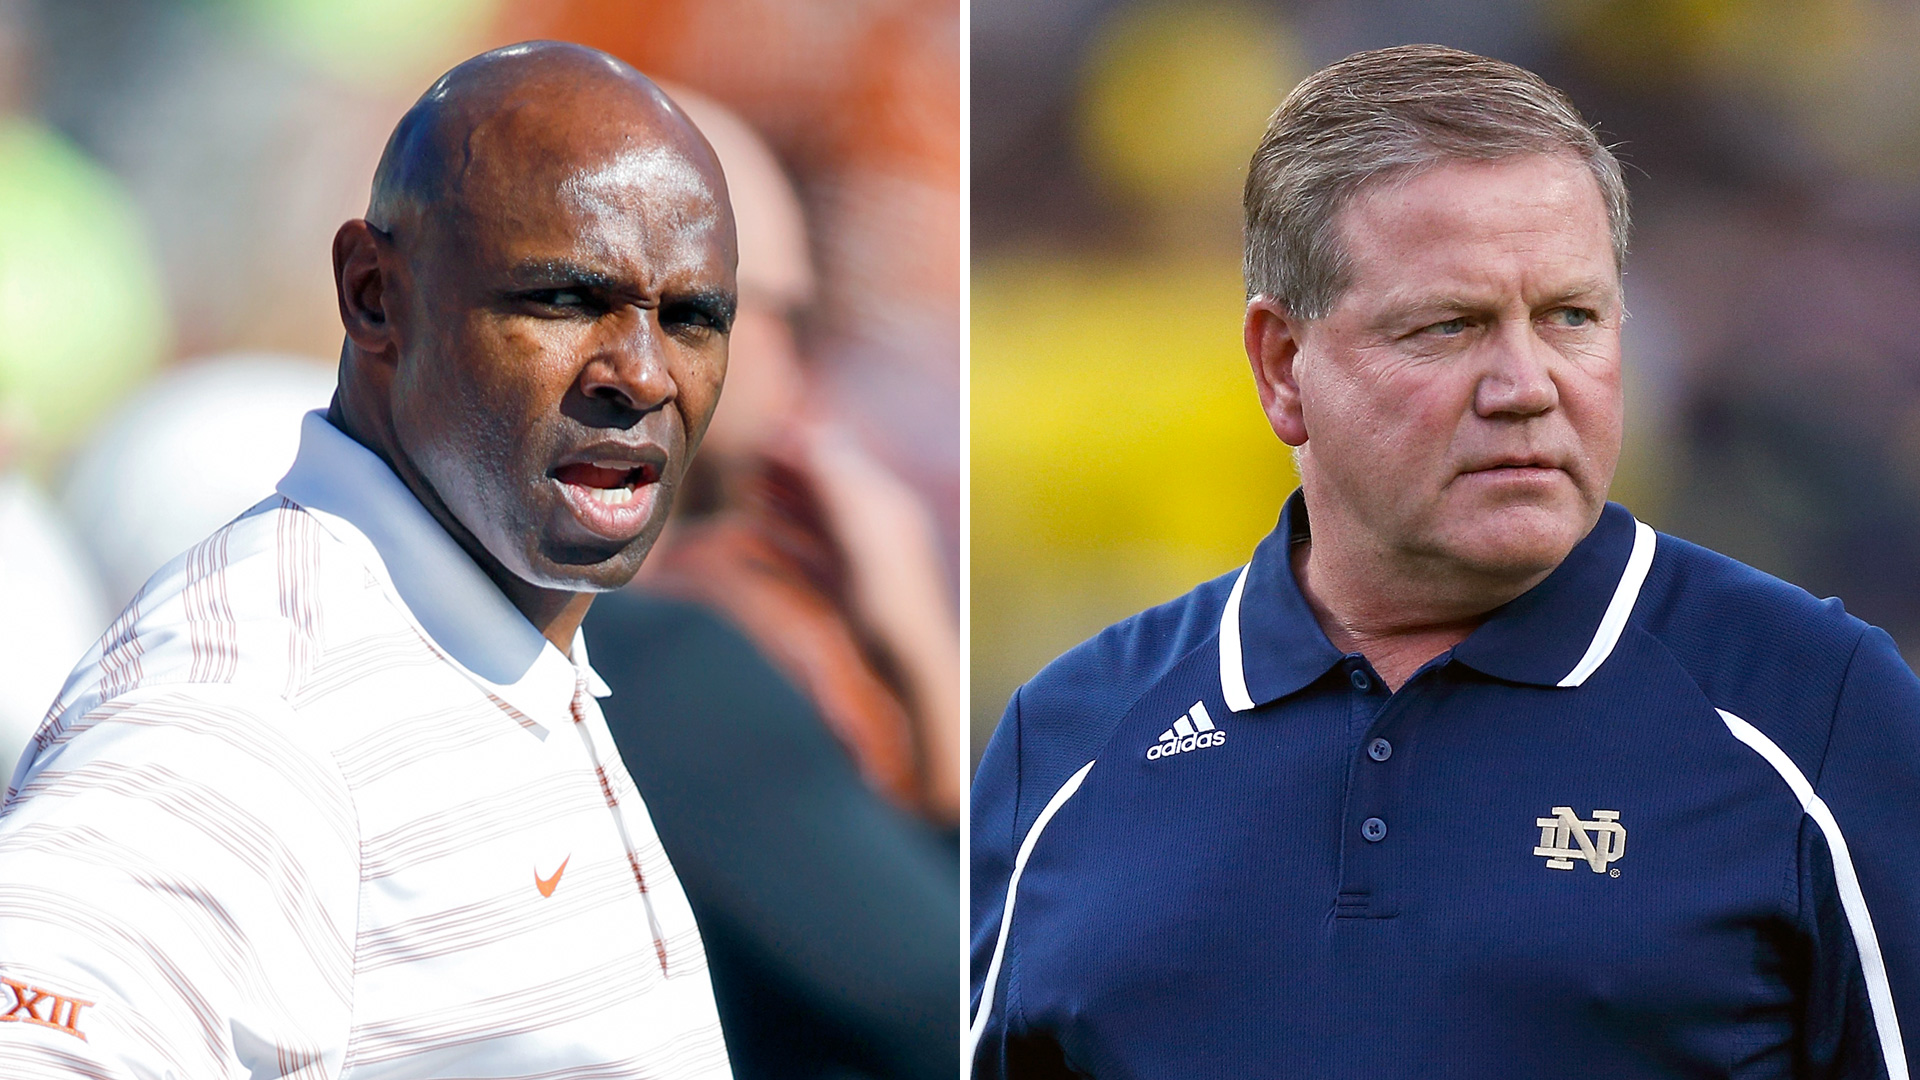 Charlie-strong-and-brian-kelly-082616-getty-ftrjpg_1wmtmirhq8uc217dxwlfvbik88